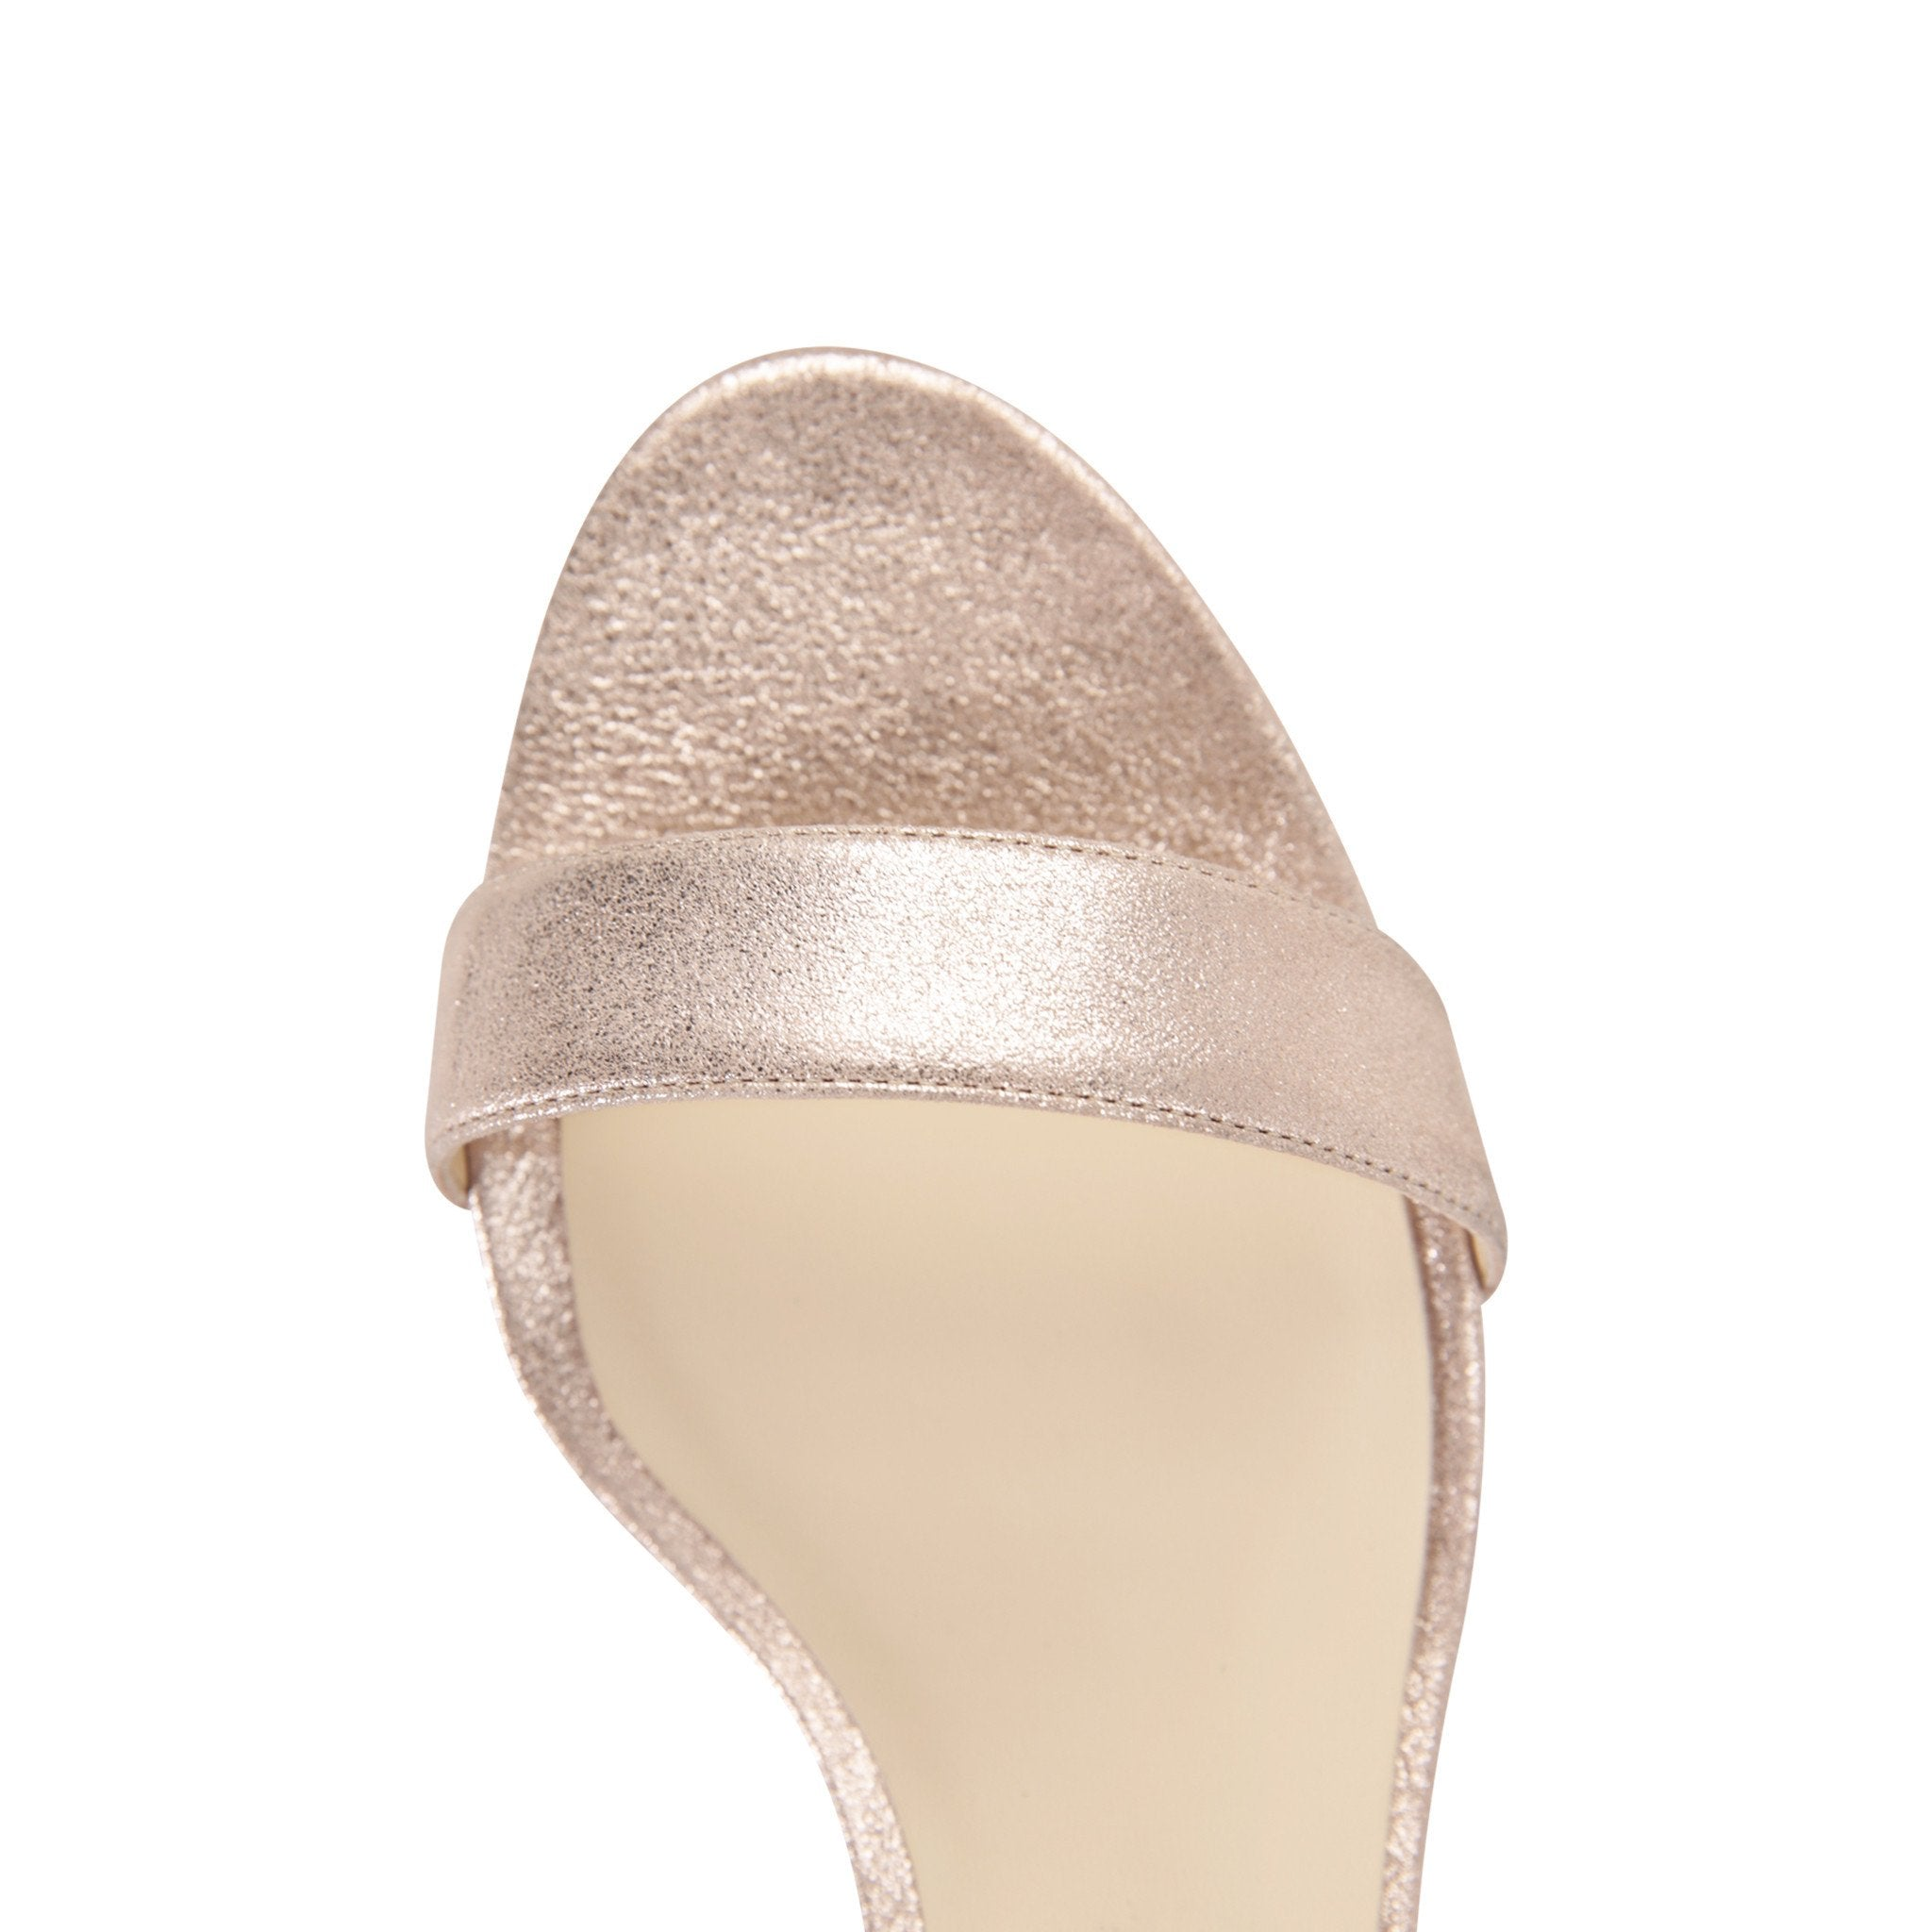 SAVONA - Burma Rose Gold, VIAJIYU - Women's Hand Made Sustainable Luxury Shoes. Made in Italy. Made to Order.